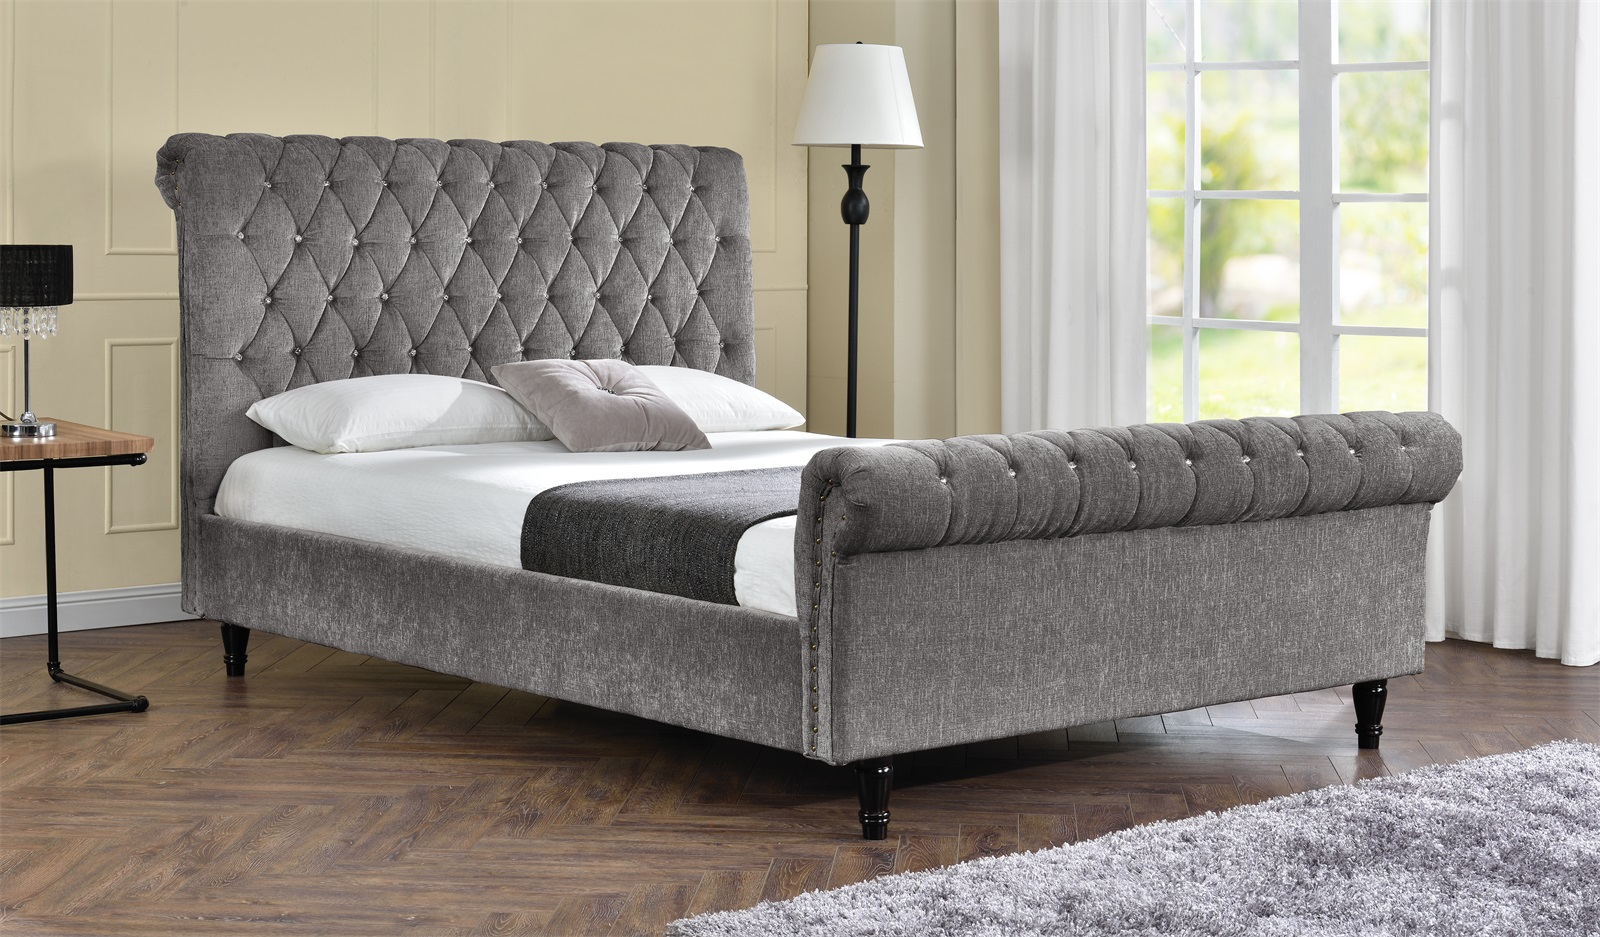 brooklyn diamante crystal mink chenille fabric bed frame sensation sleep beds and mattresses. Black Bedroom Furniture Sets. Home Design Ideas